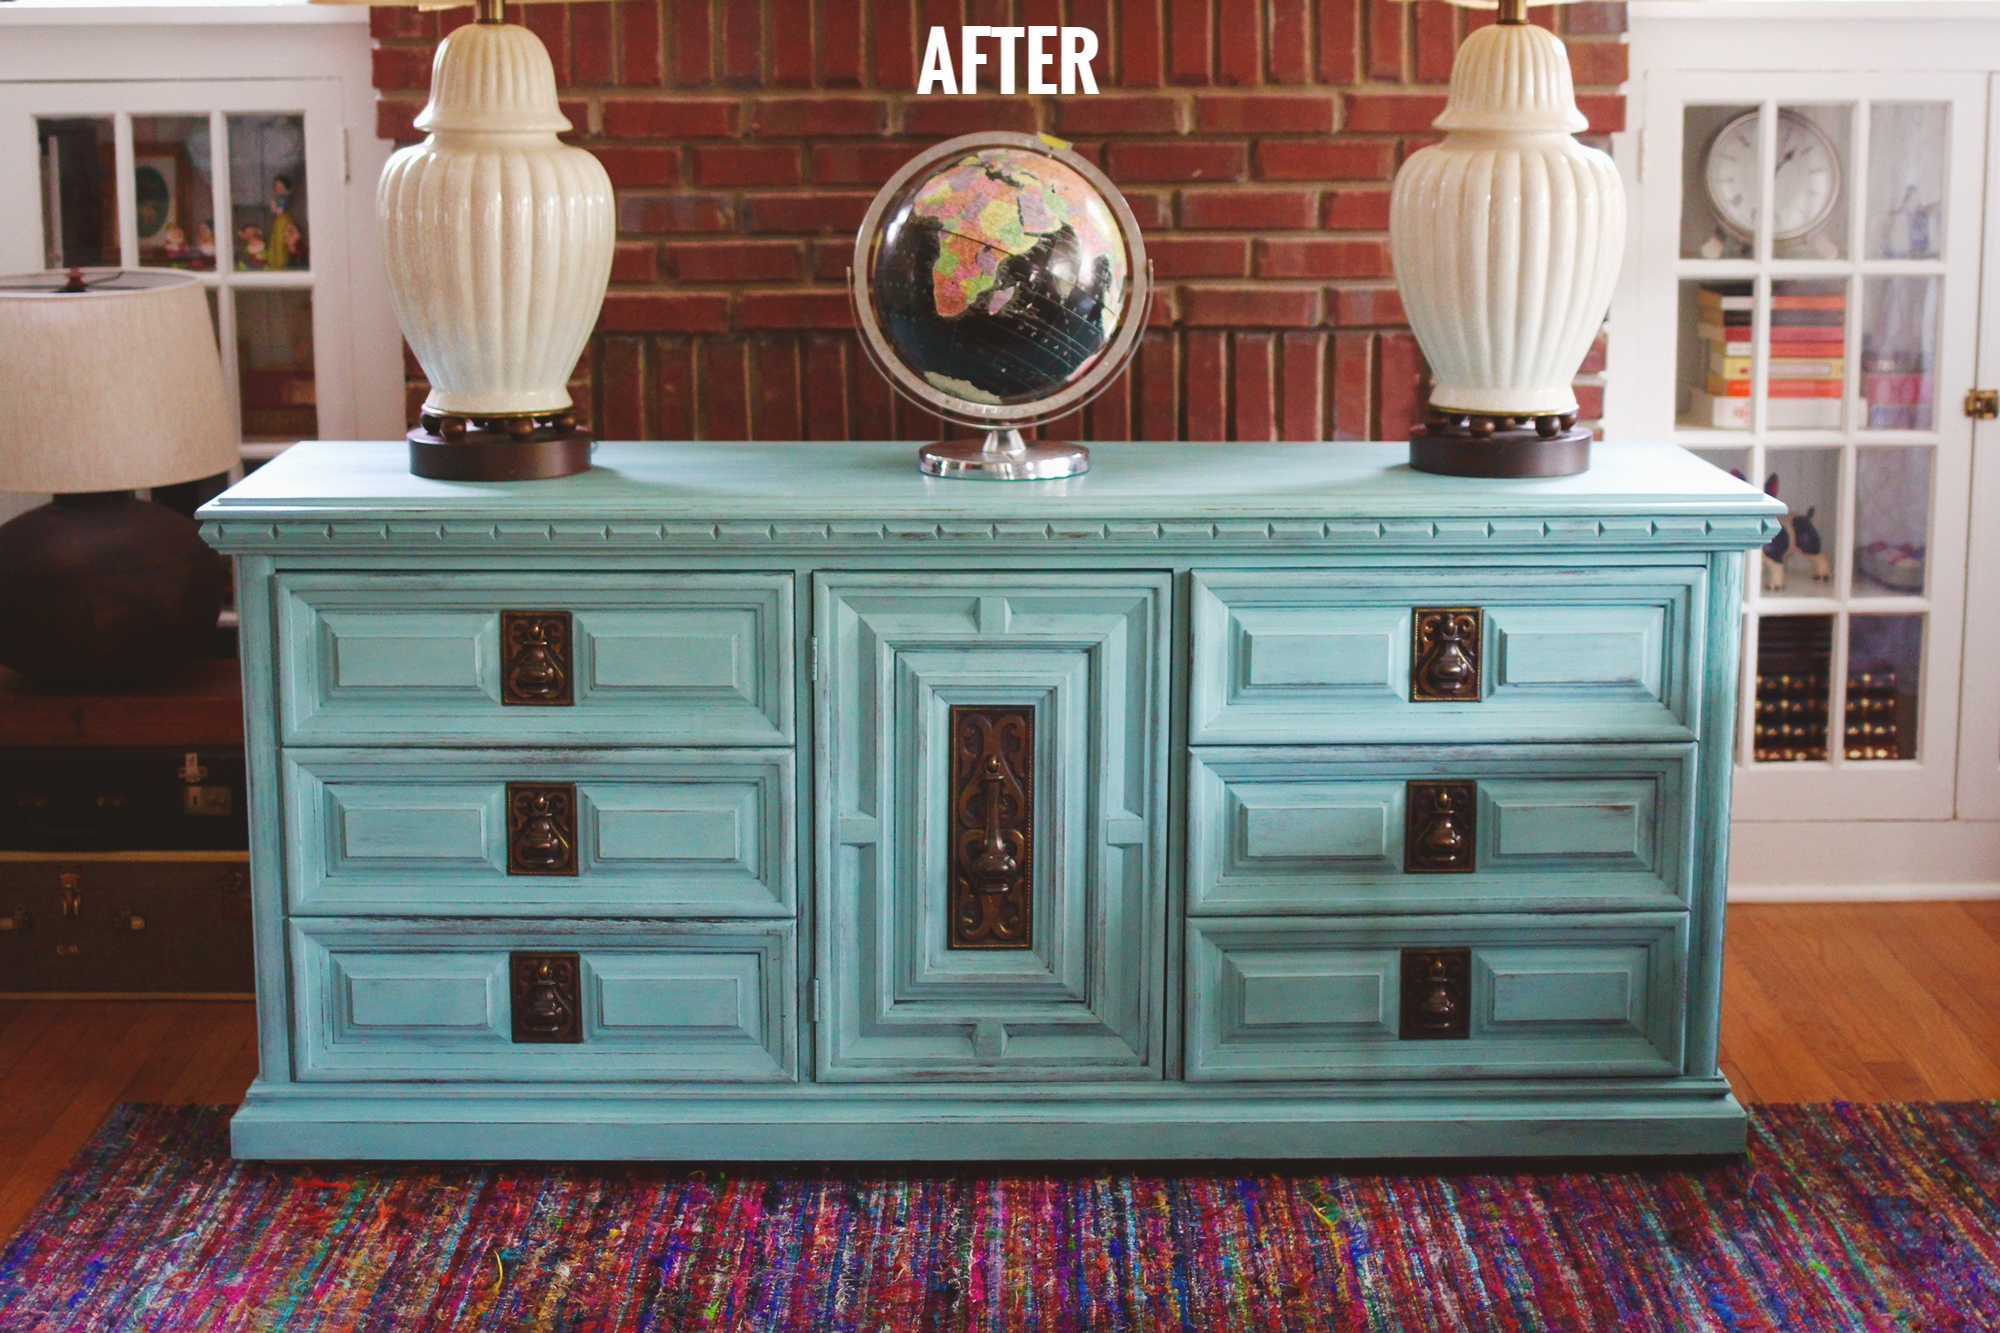 jo-torrijos-a-simpler-design-atlanta-painted-furniture-annie-sloan-provence-duck-egg-blue-dresser-5.jpg